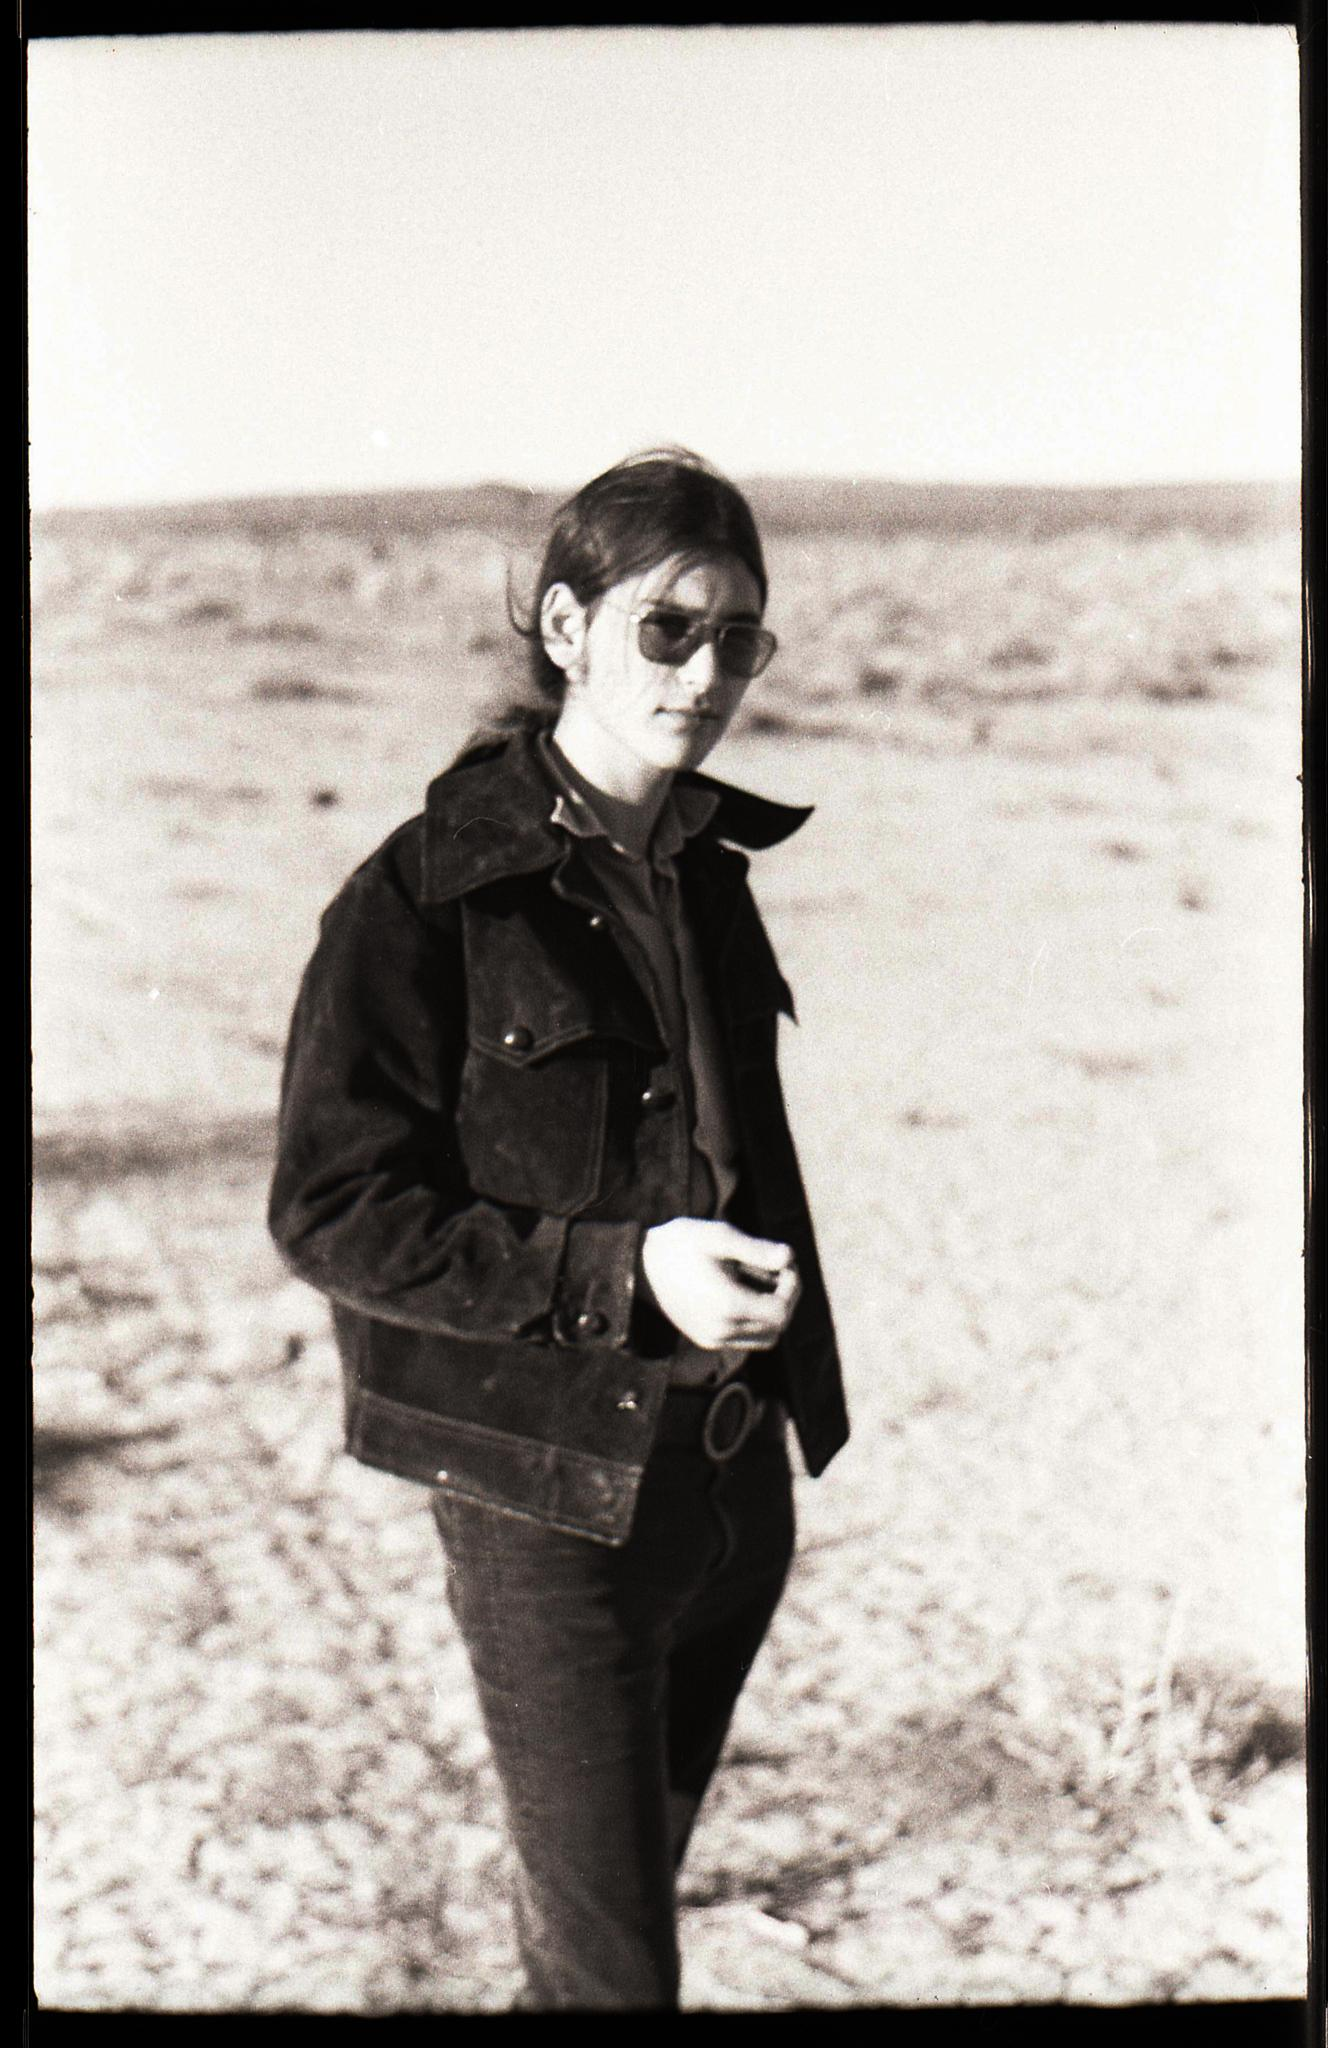 Portrait of Jay in the Mojave Desert by T R Leventhal